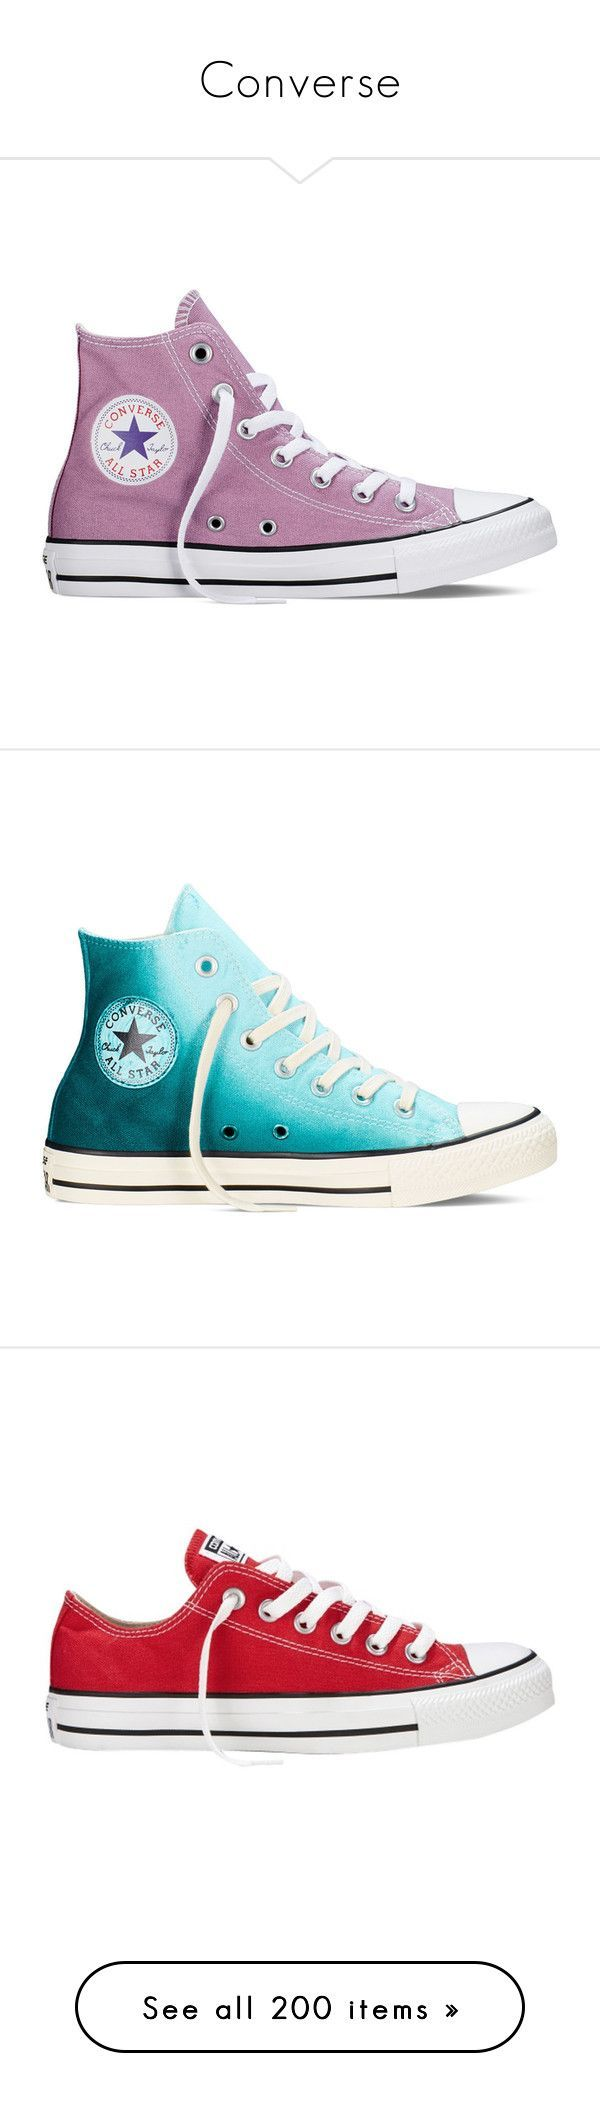 """""""Converse"""" by lghockey ❤ liked on Polyvore featuring shoes, sneakers, converse, powder purple, purple hi tops, converse trainers, converse footwear, hi tops, purple sneakers and star shoes"""